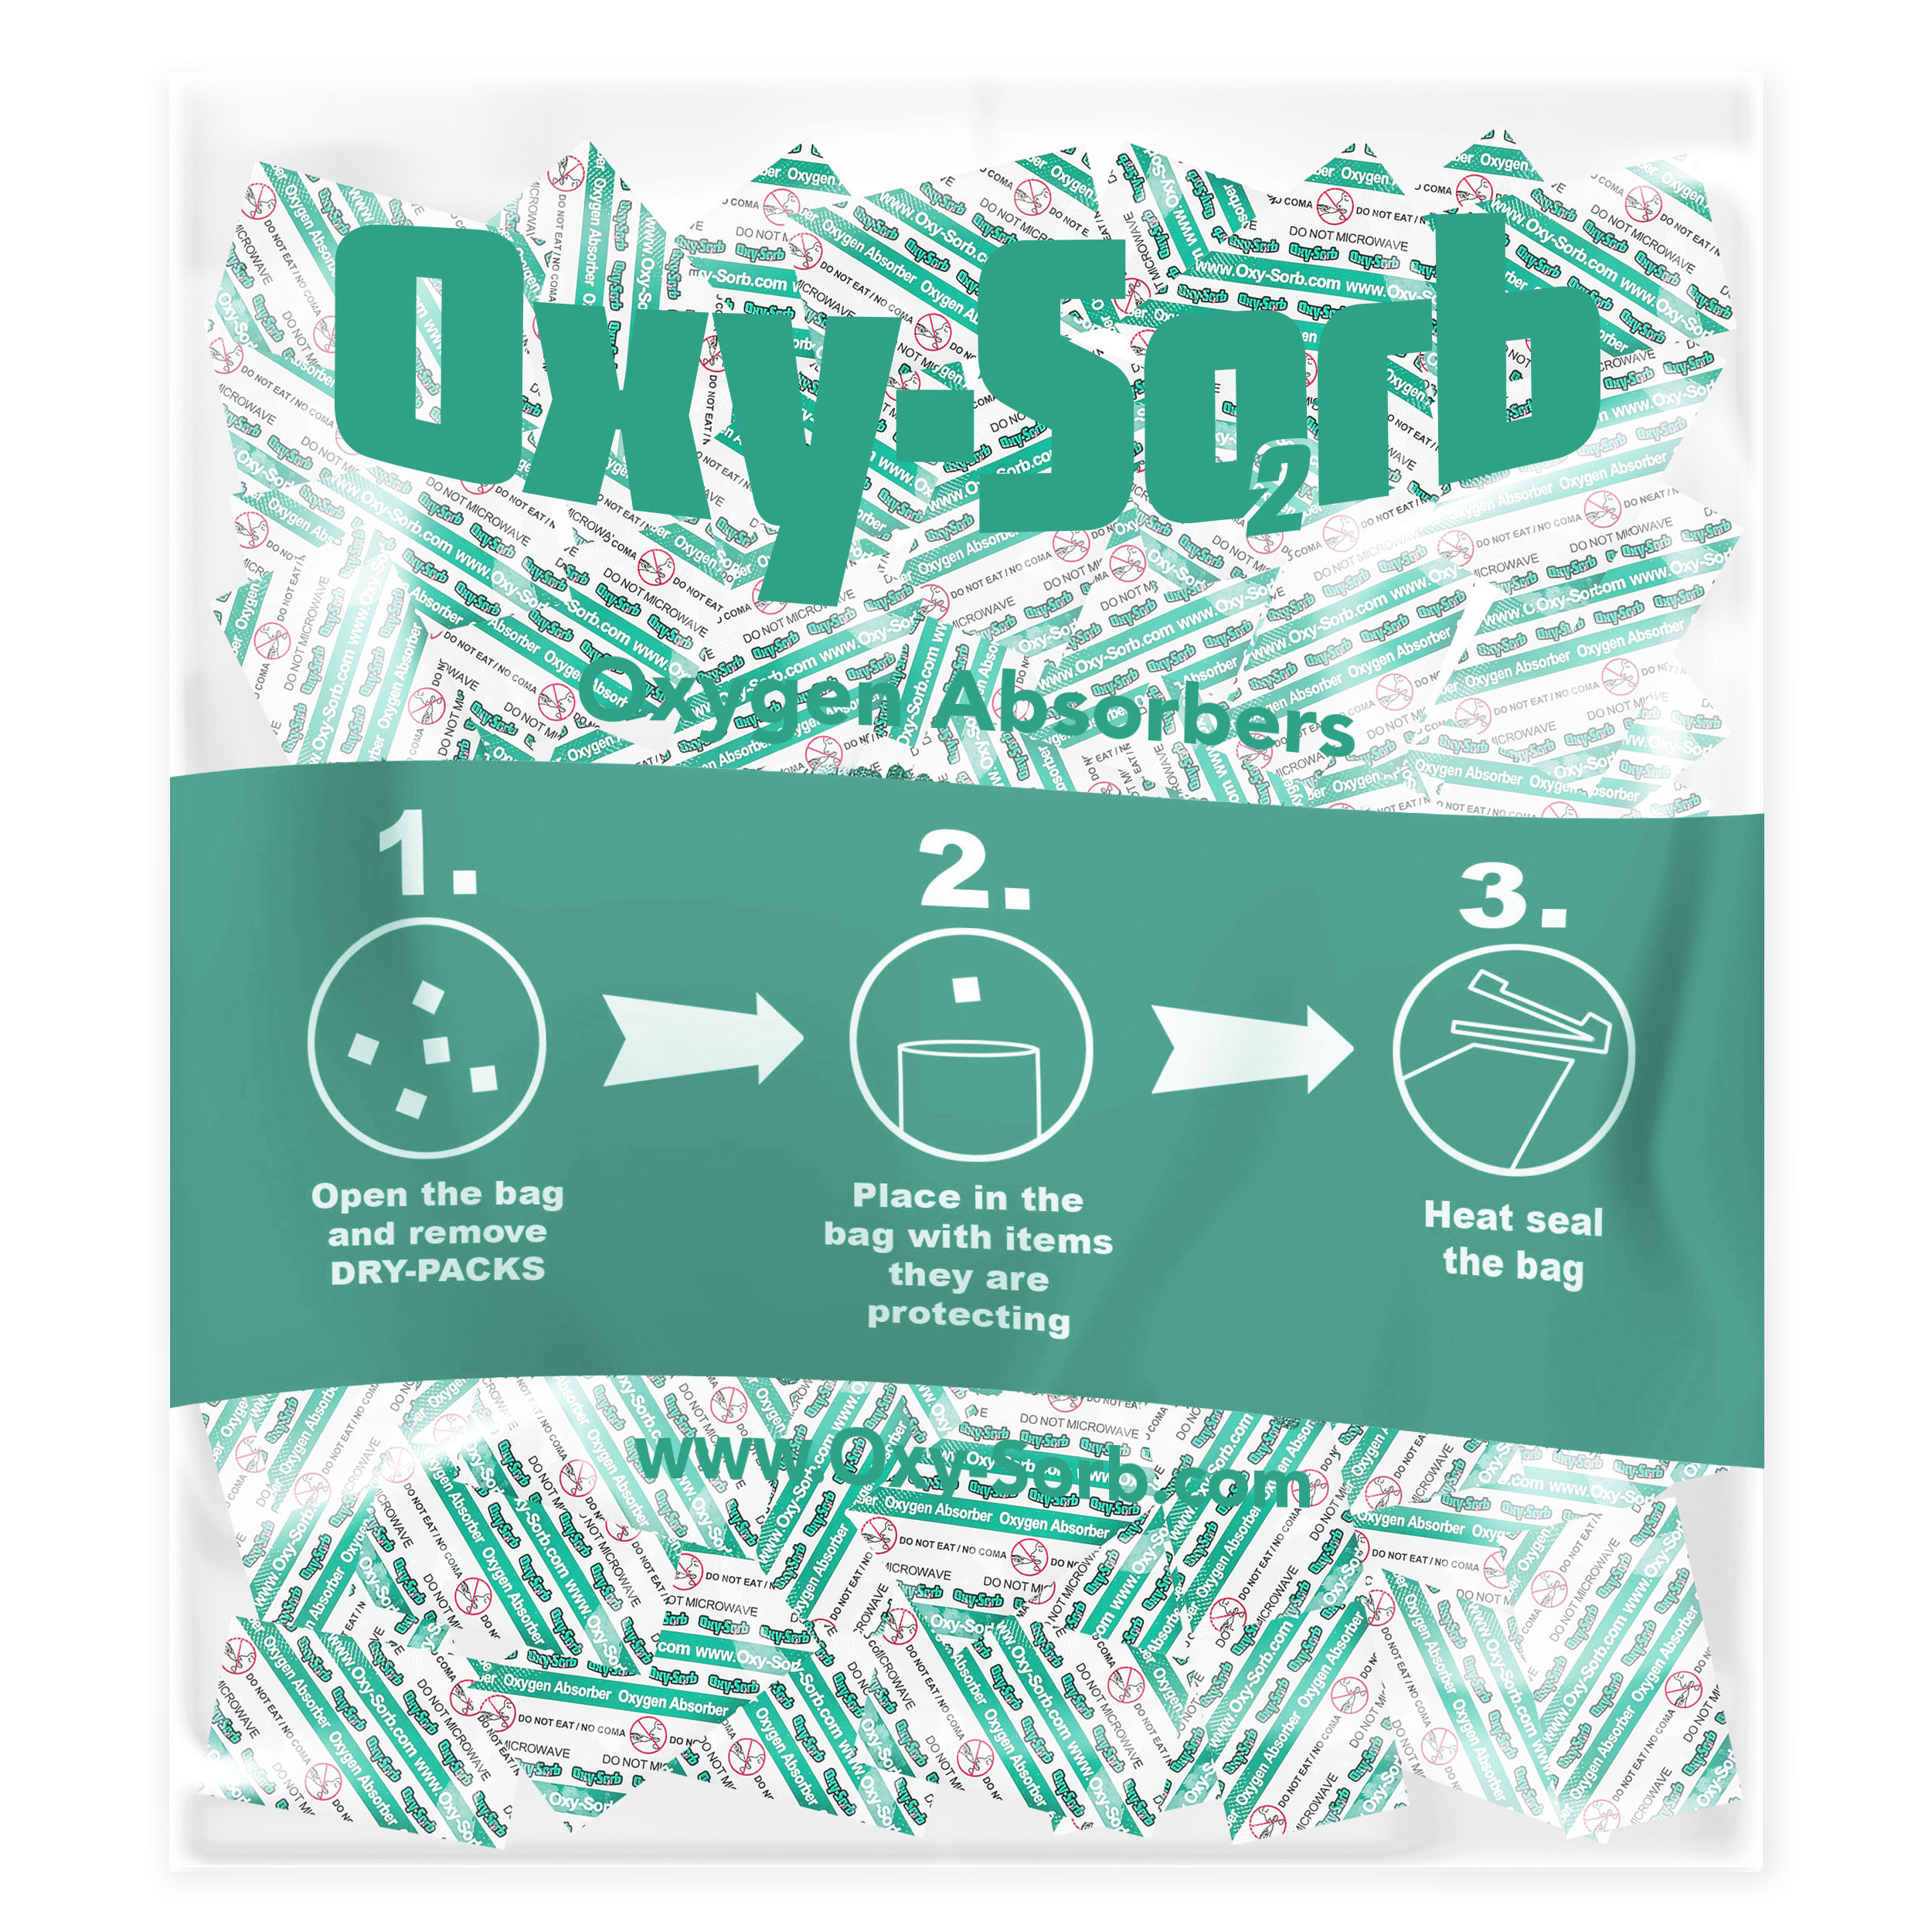 Oxy-Sorb 300-Pack Oxygen Absorber, 100cc